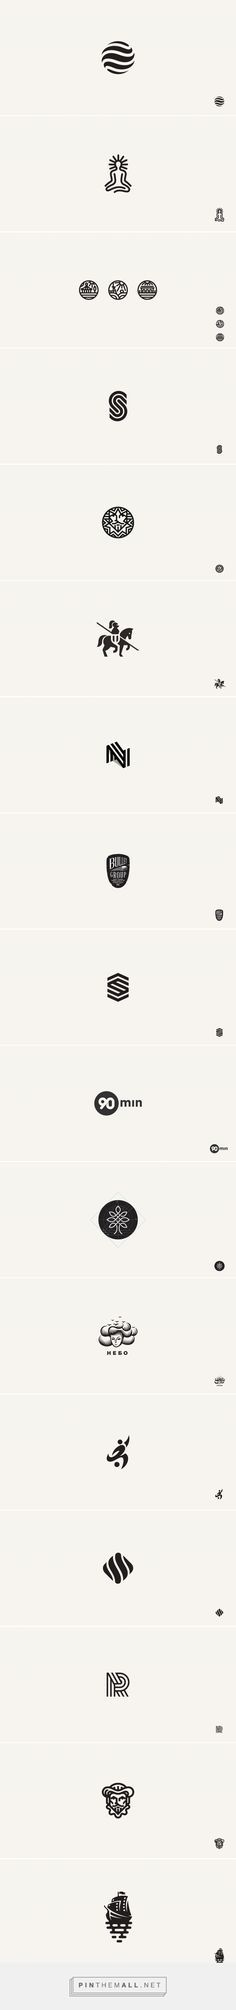 Mixed Marks on Behance... - a grouped images picture - Pin Them All